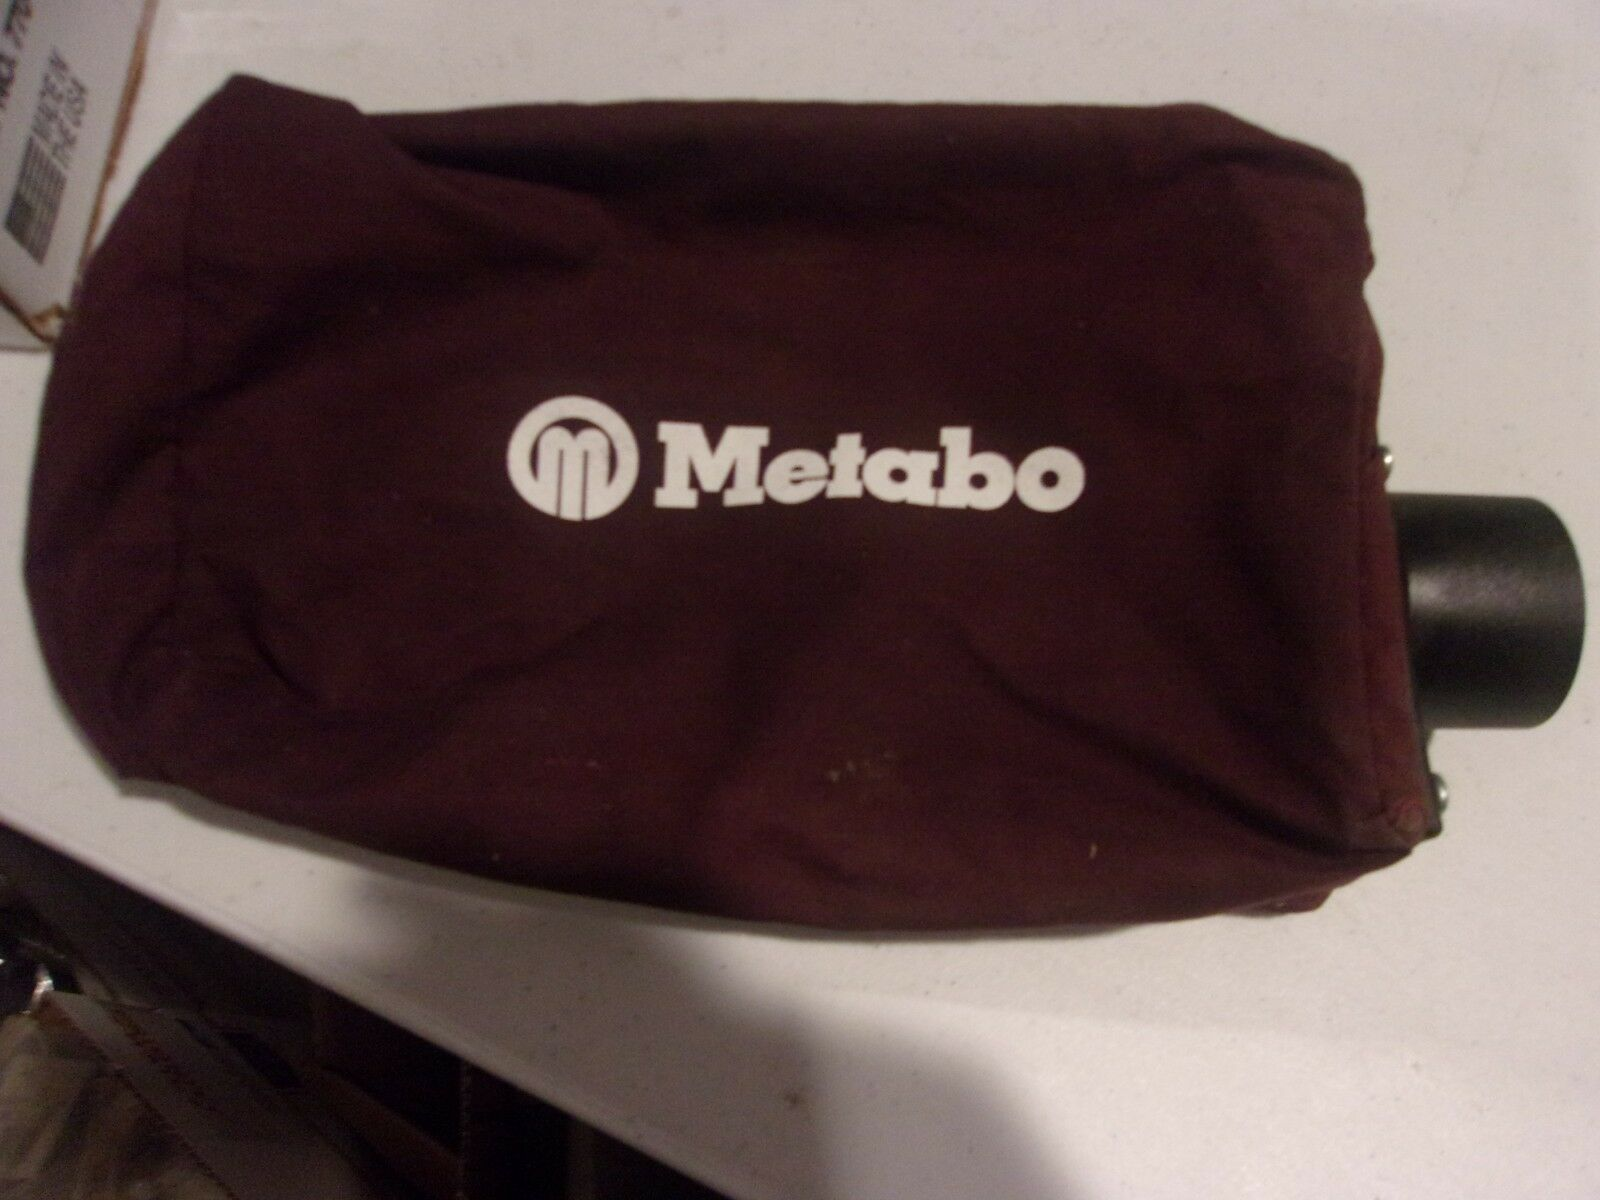 METABO DUST COLLECTION BAG CLOTH 1 1/4 OD 10 IN LONG 6 IN TALL 2 1/2 IN WIDE